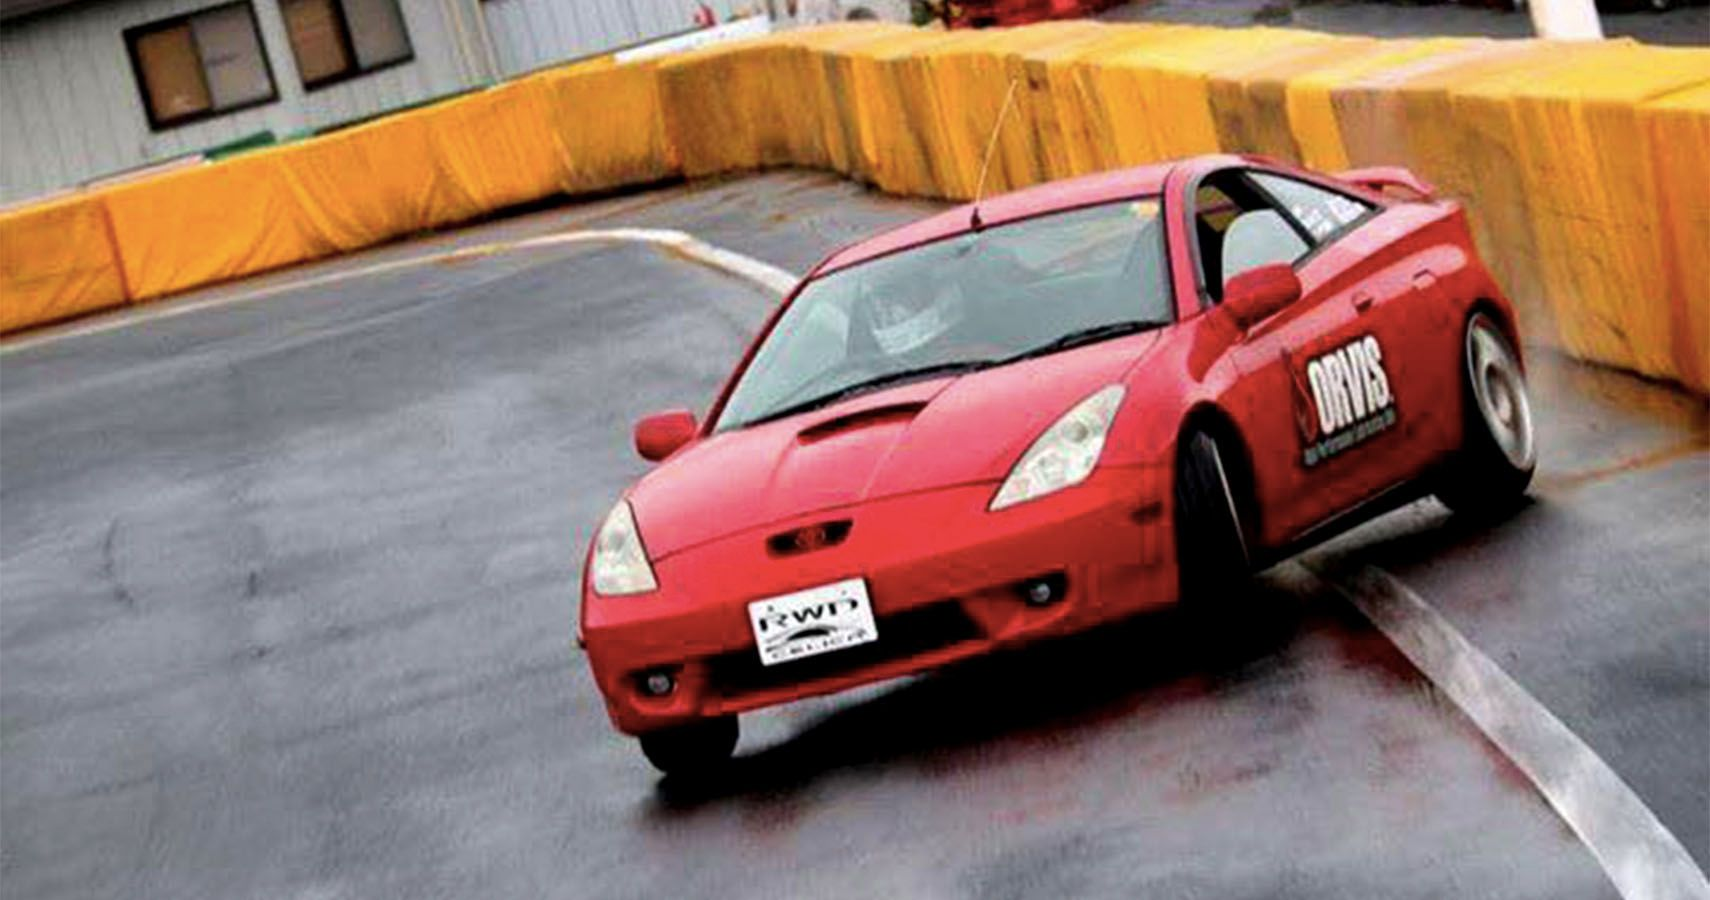 Someone RWD-Swapped This Toyota Celica For Drifting Fun | HotCars